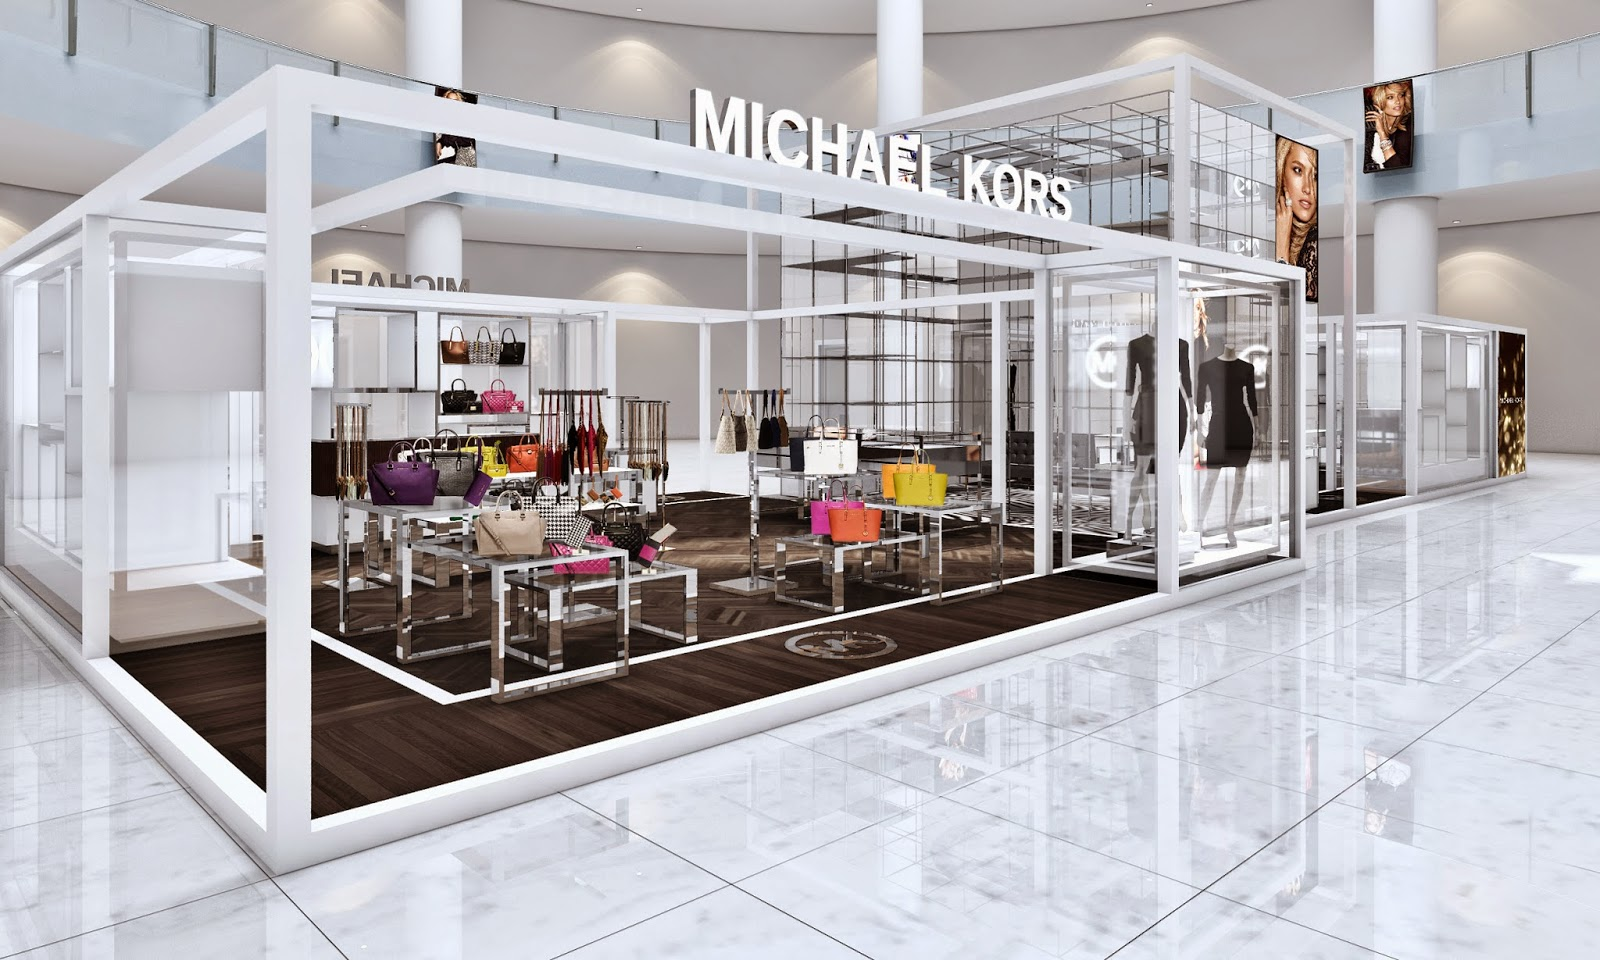 michael kors to open selma centric pop up shop in dubai the vanity. Black Bedroom Furniture Sets. Home Design Ideas